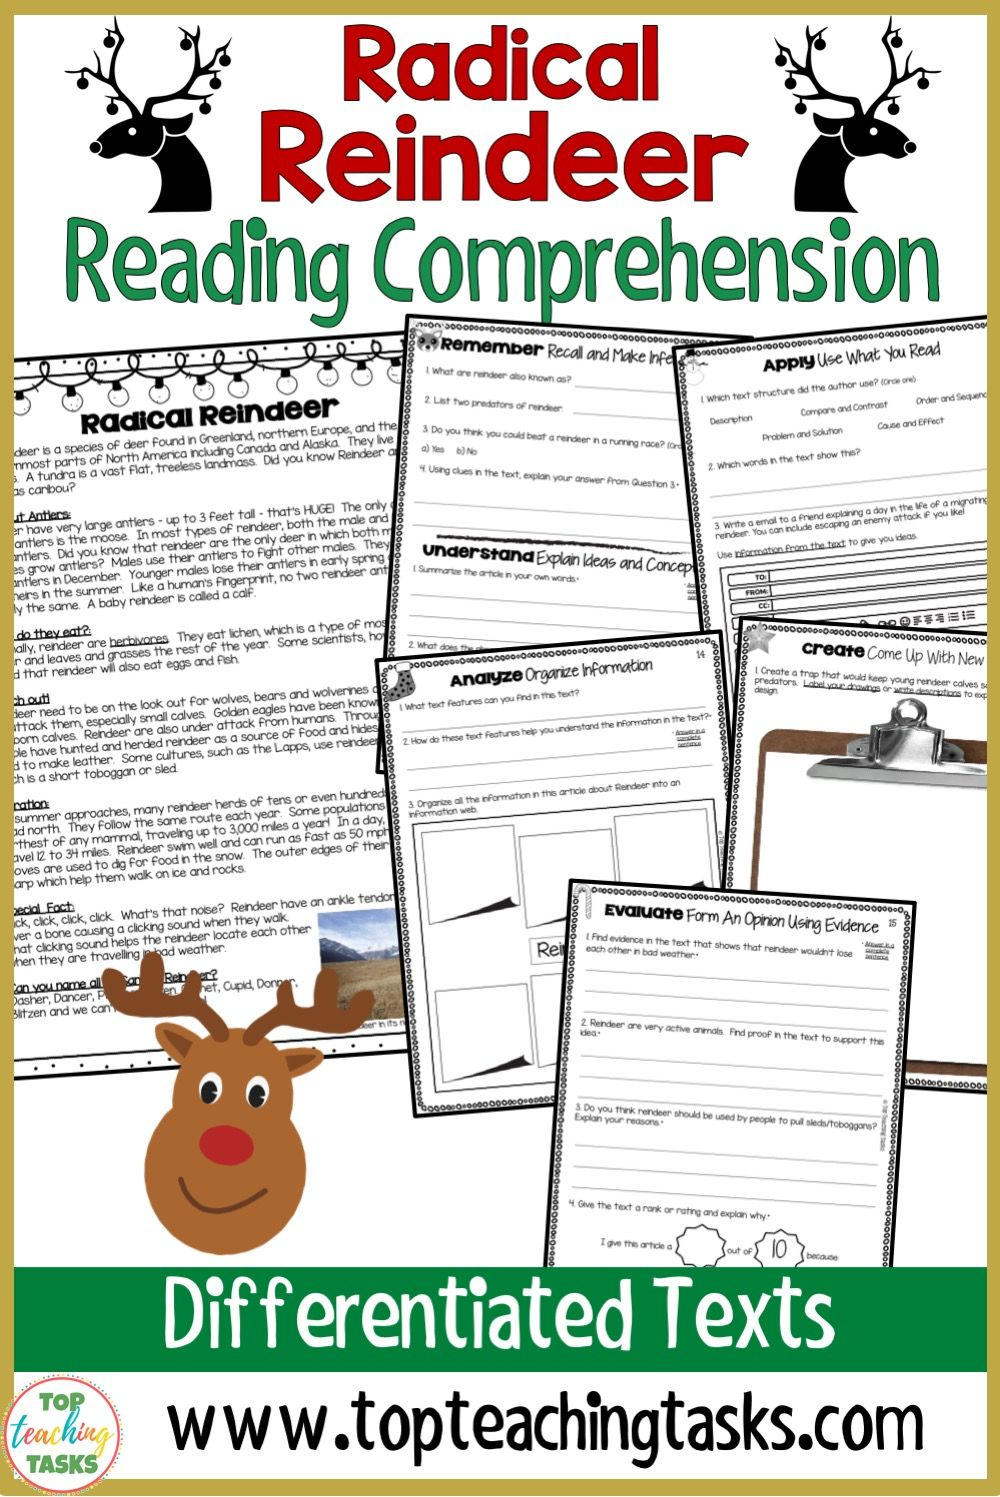 Christmas Reindeer Reading Comprehension Passage With Text Dependent Questions Top Teaching Tasks Reading Comprehension Reading Comprehension Passages Comprehension Passage [ 1497 x 1000 Pixel ]